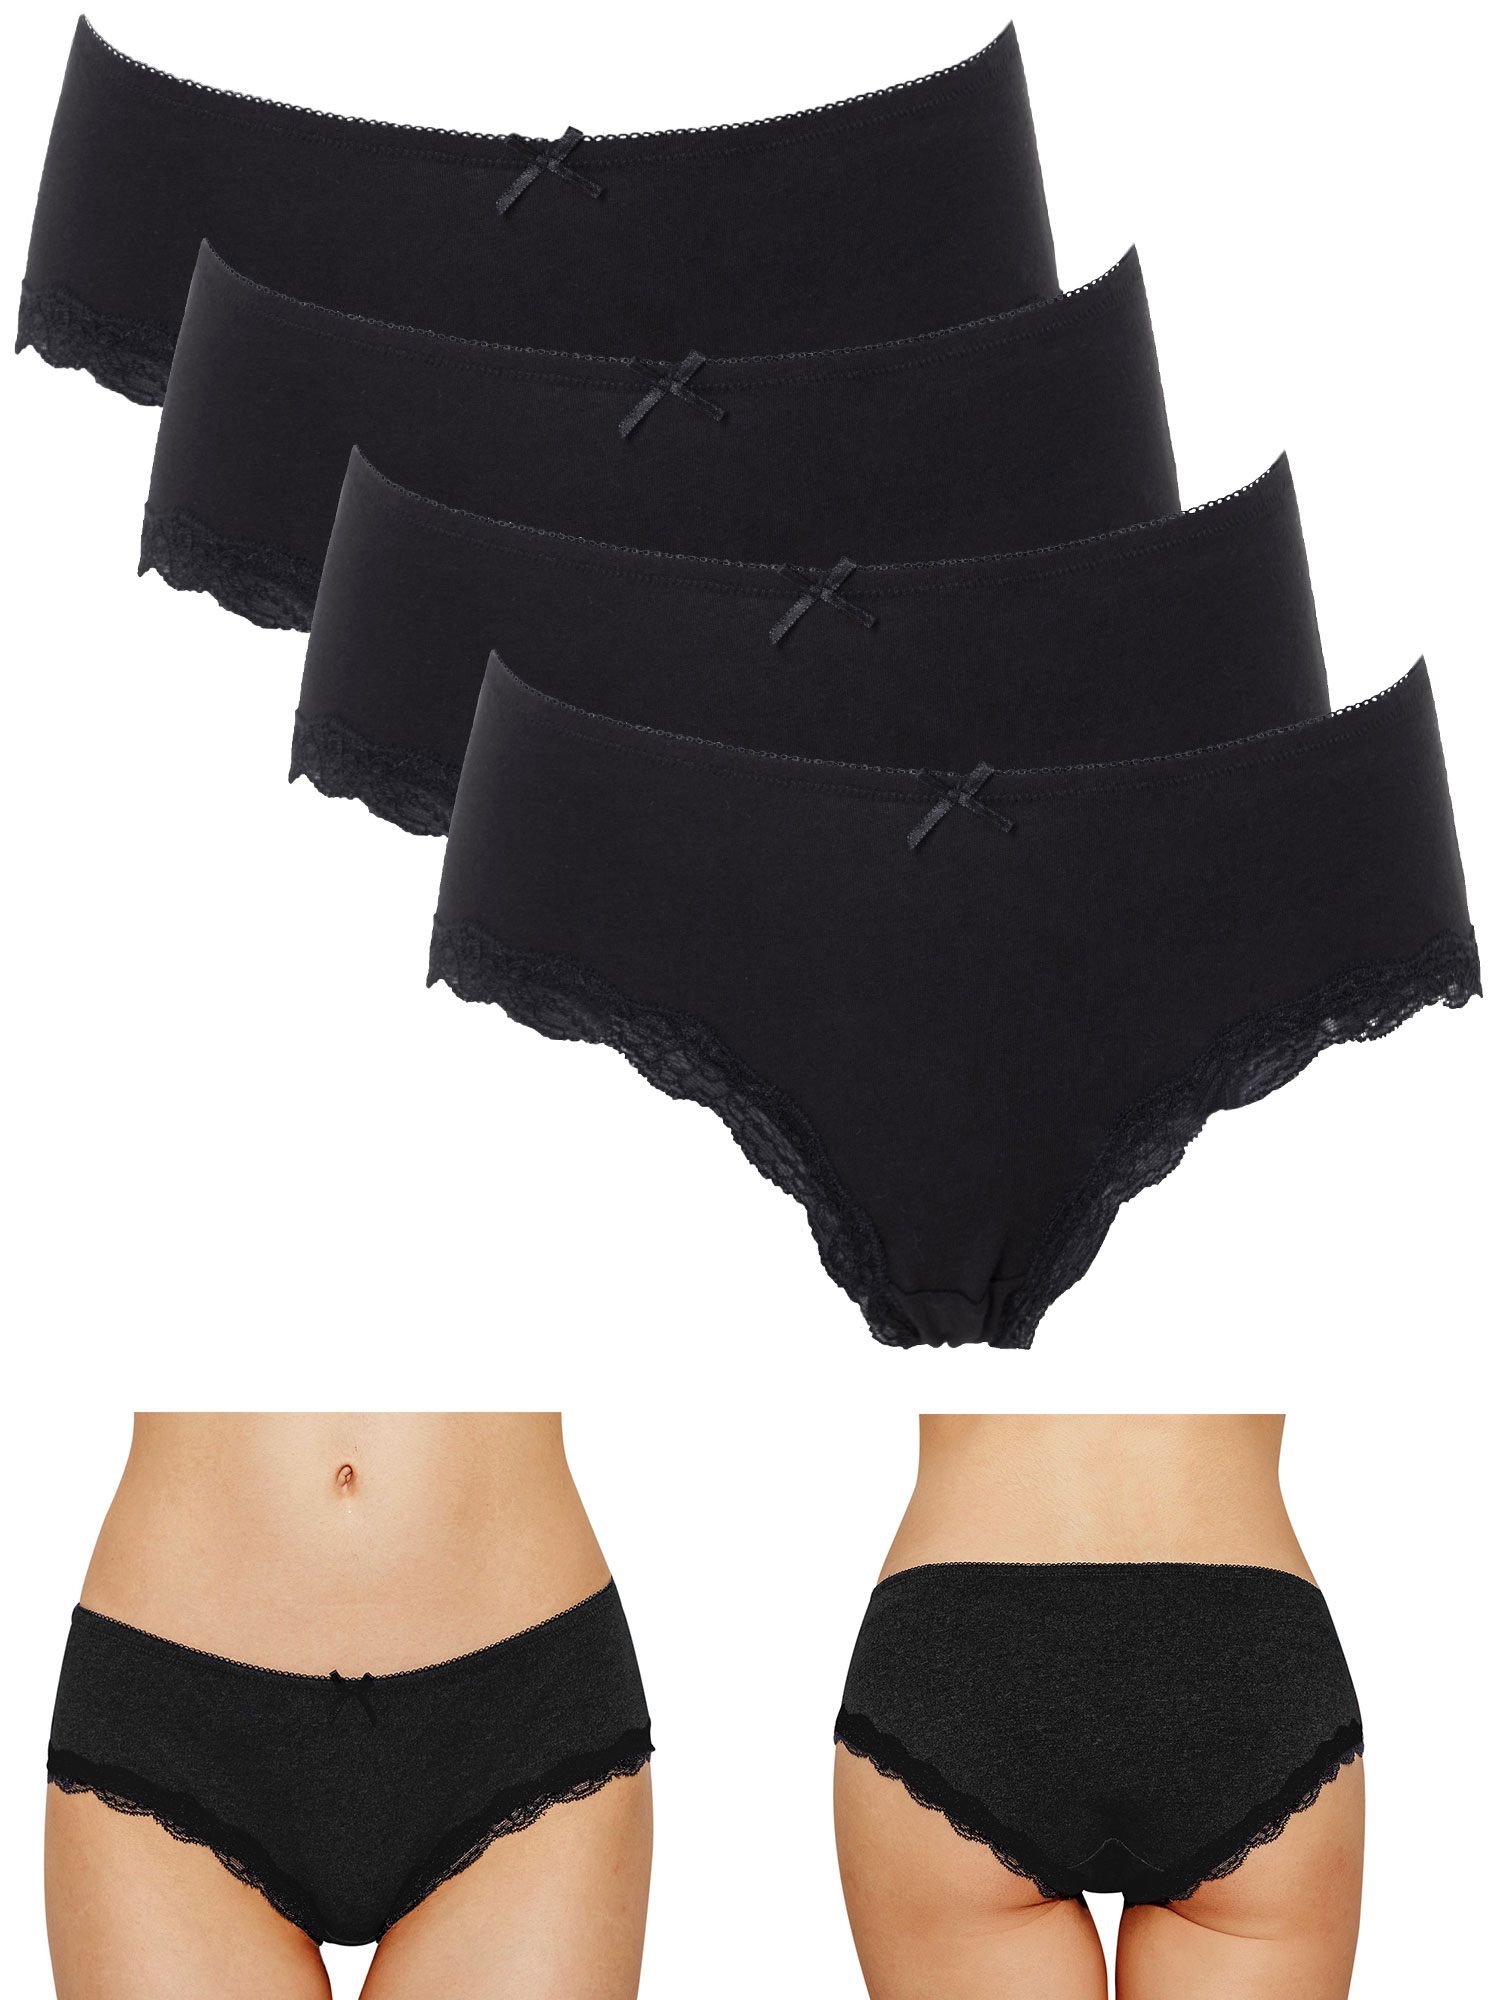 Alyce Intimates Pack of 8 Womens Cotton Boyshort Panty with Cute Button Fly Design